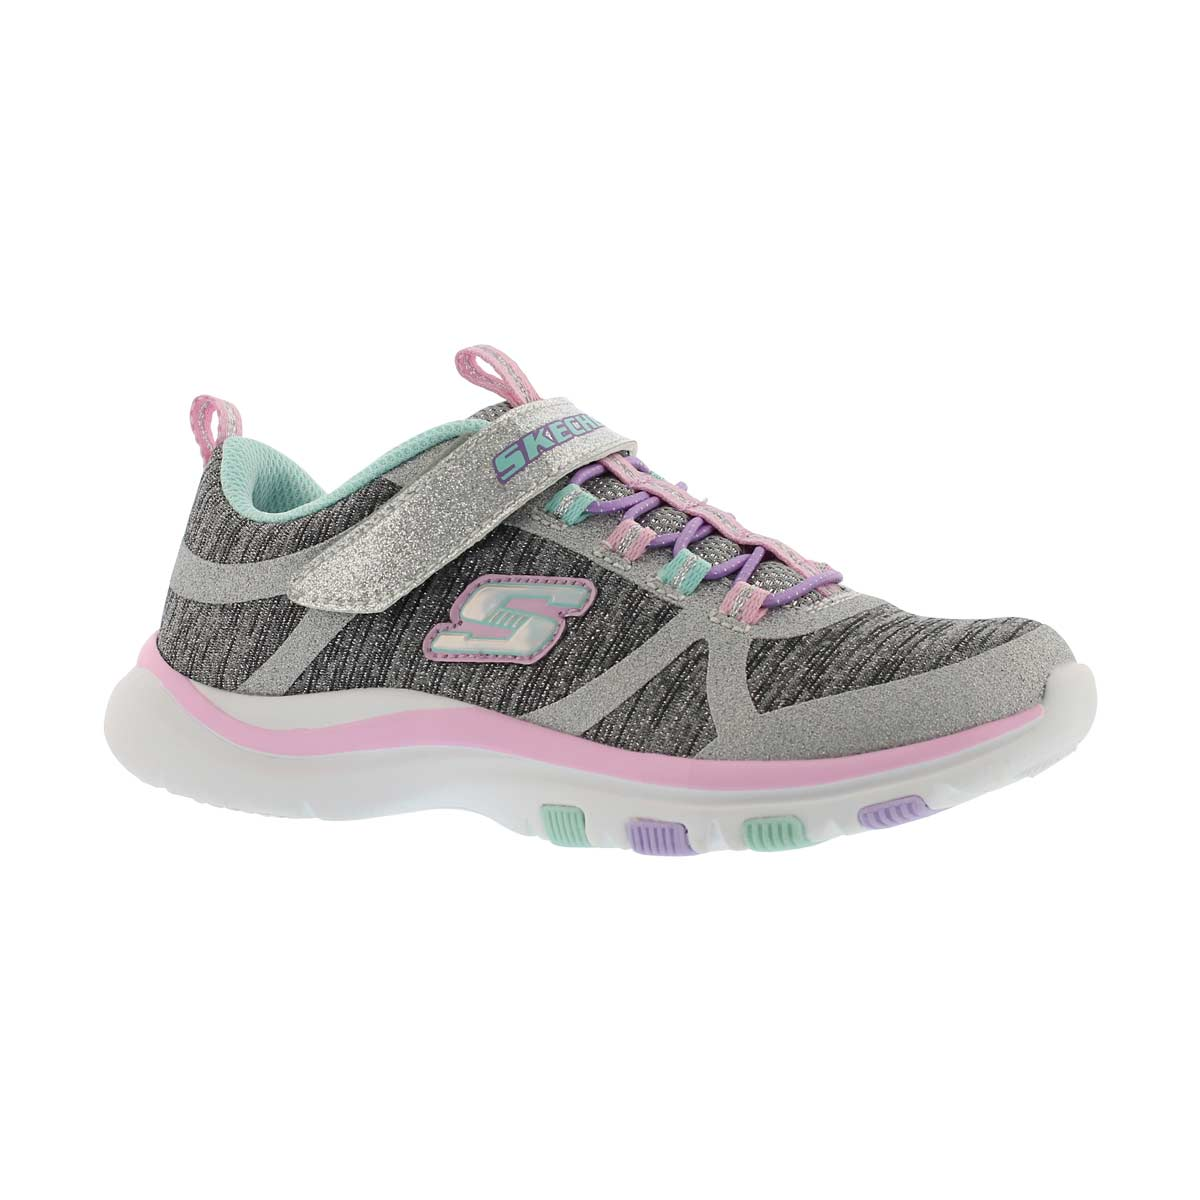 Girls' TRAINER LITE JAZZY JUMPER gy/mlt sneakers